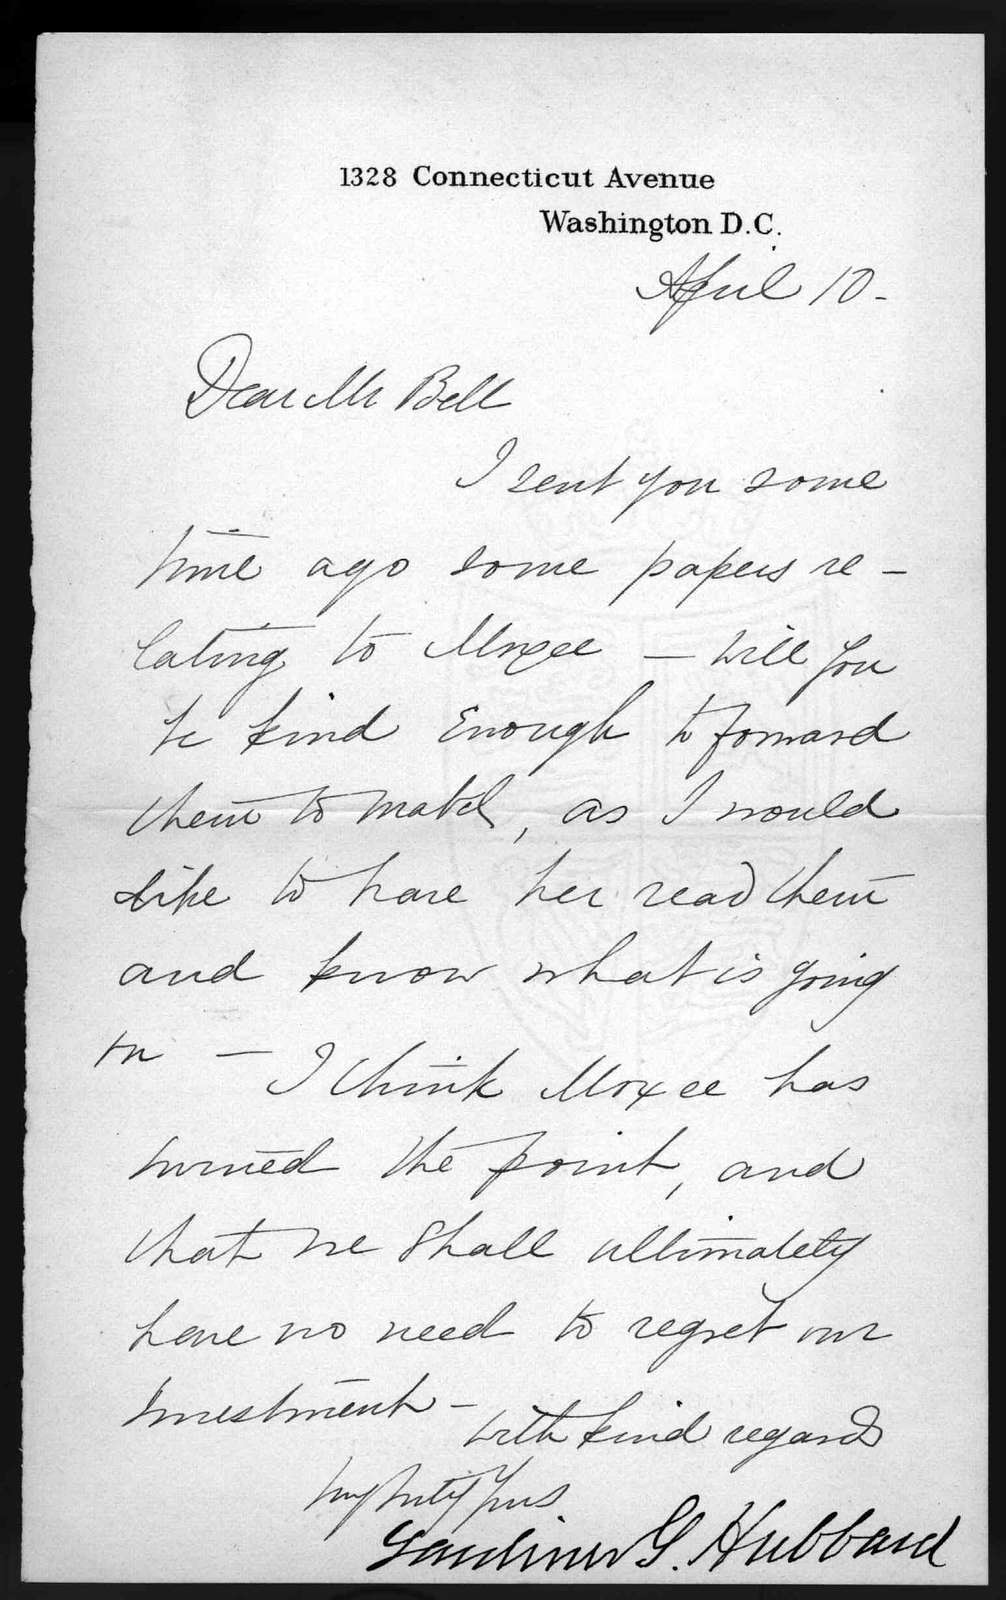 Letter from Gardiner Greene Hubbard to Alexander Graham Bell, April 10, 1877